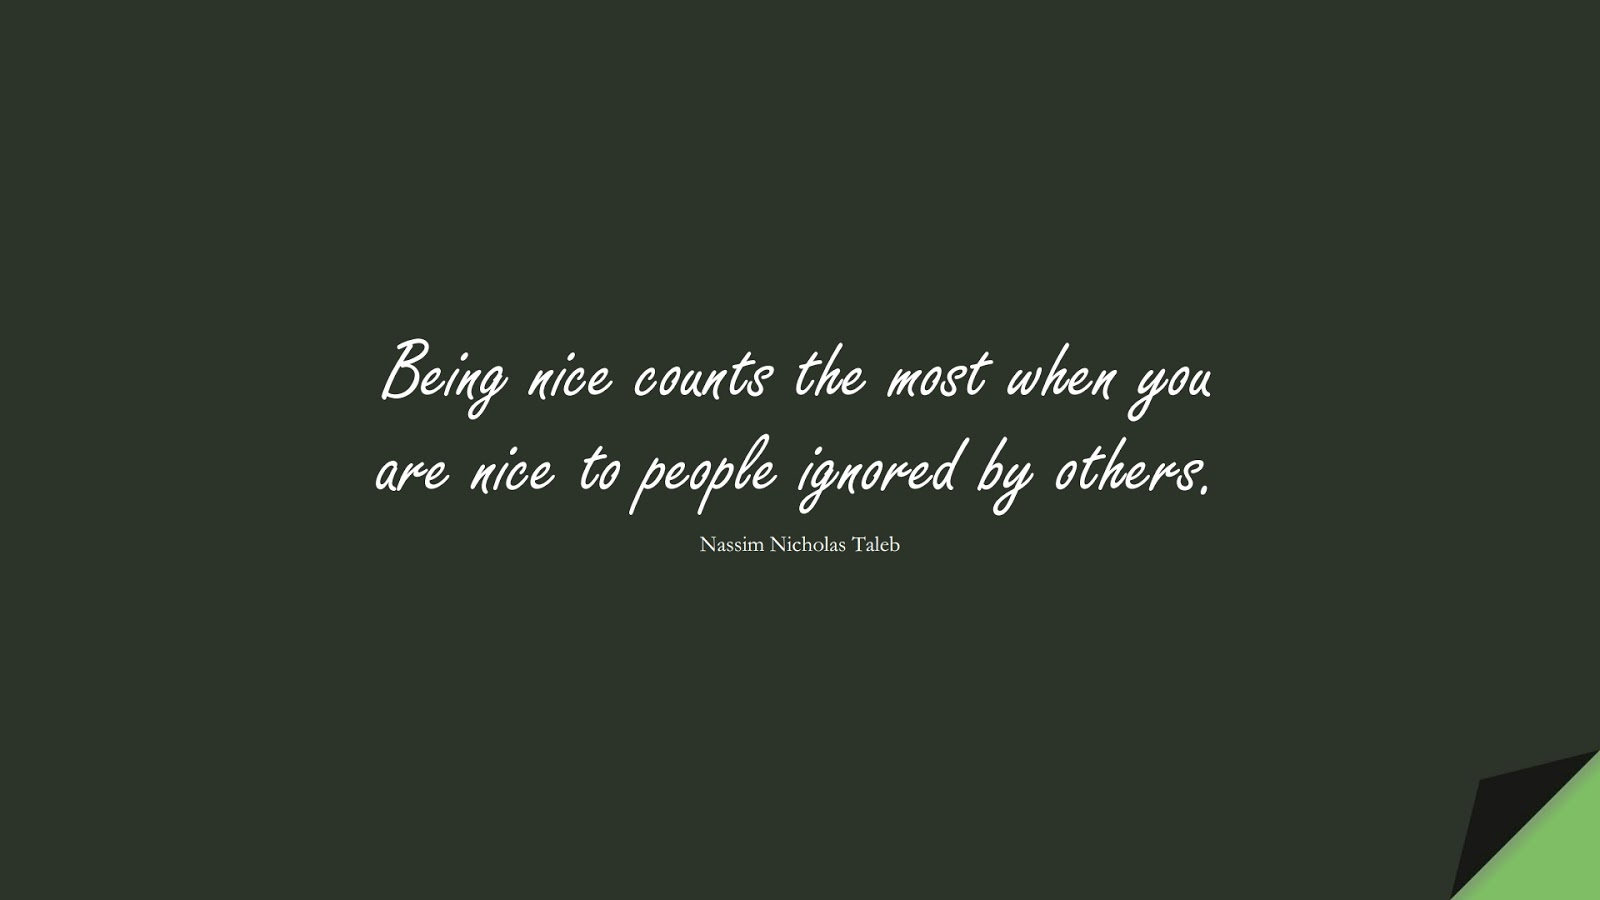 Being nice counts the most when you are nice to people ignored by others. (Nassim Nicholas Taleb);  #RelationshipQuotes